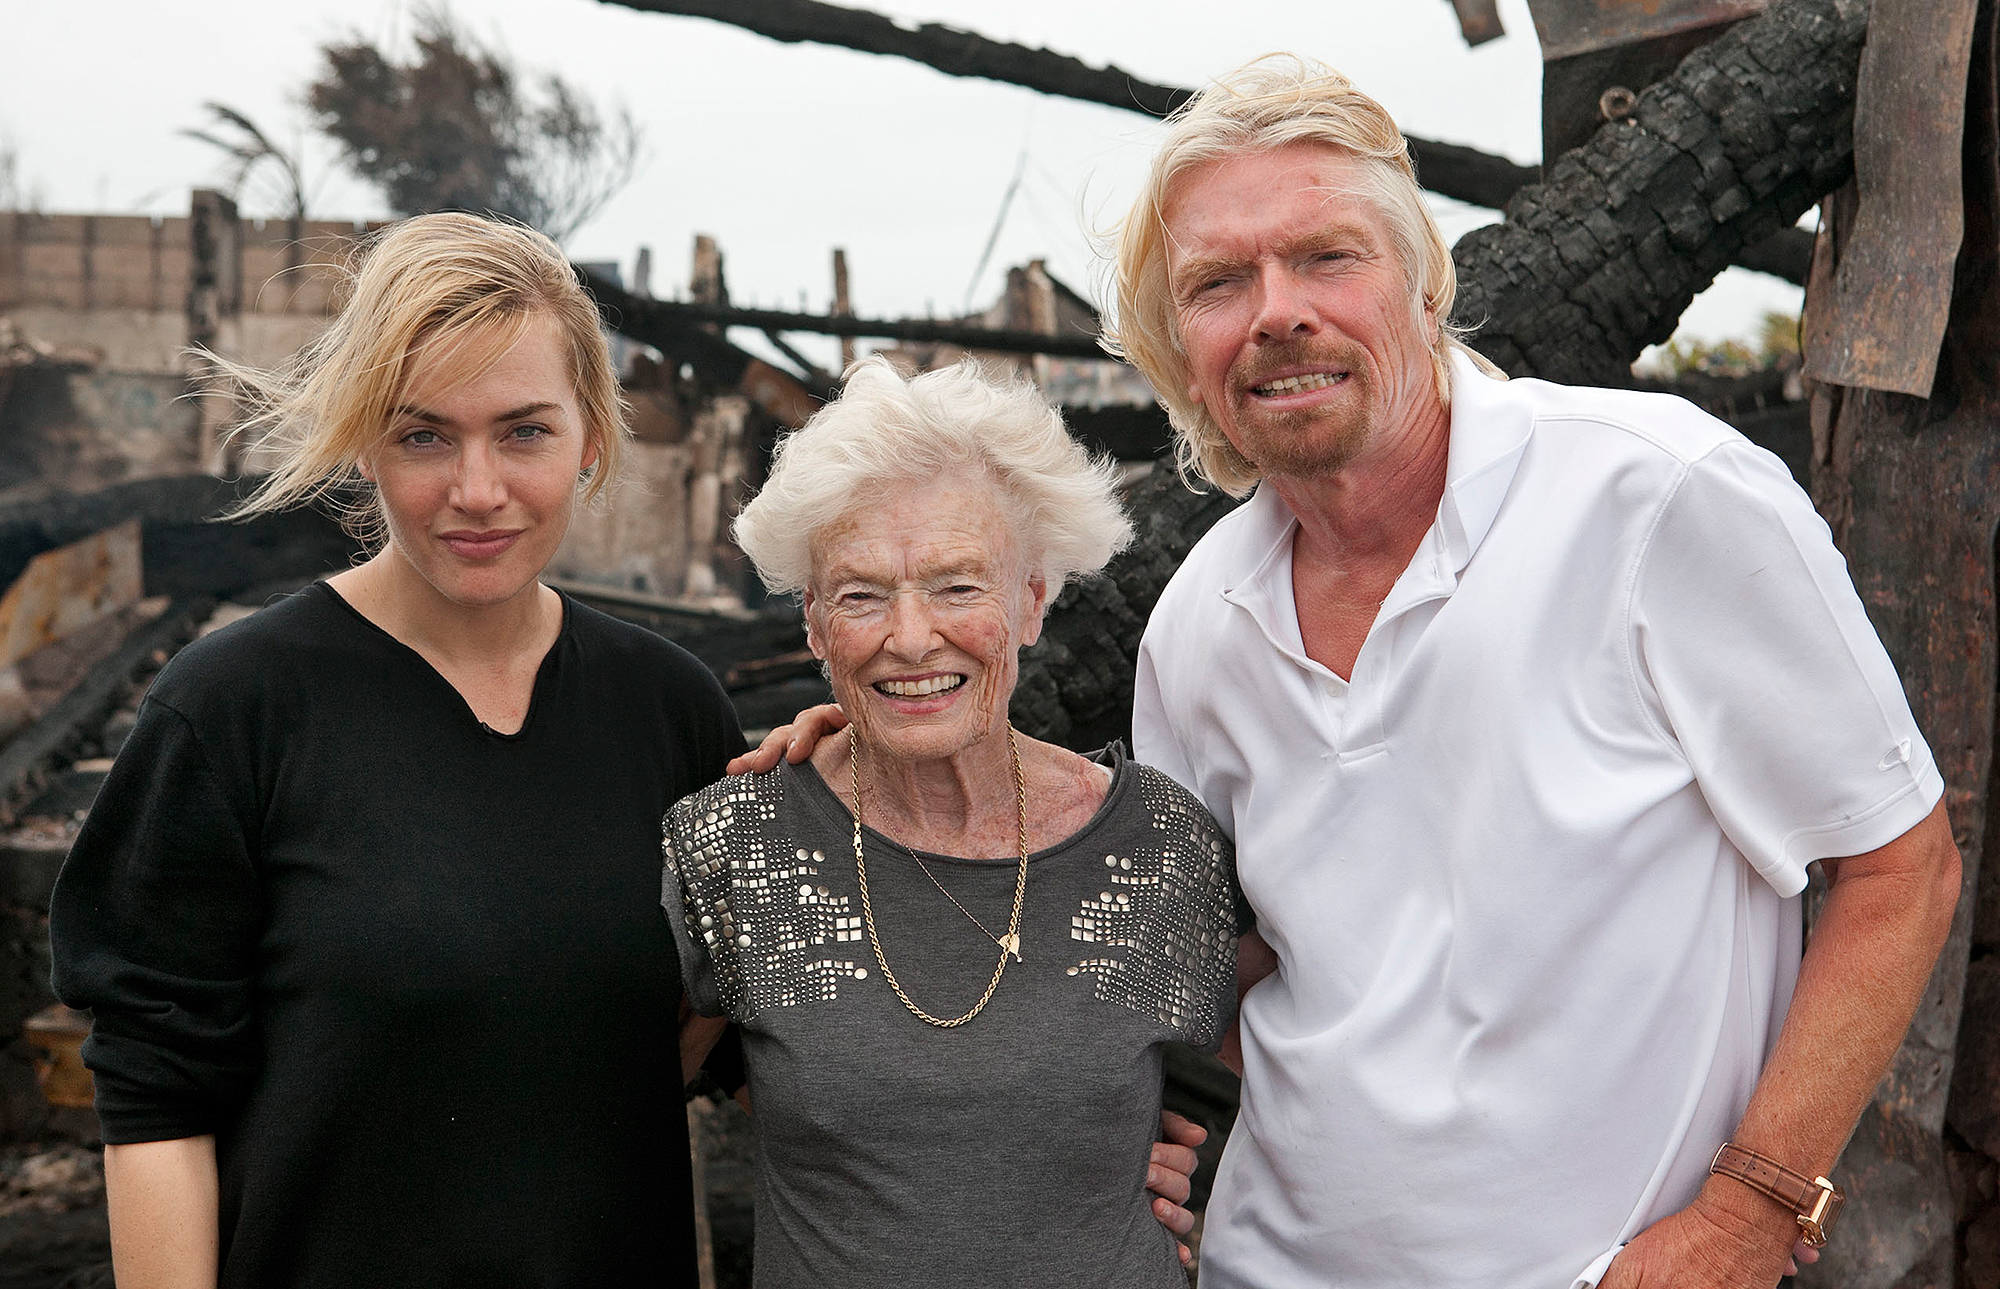 EXCLUSIVE: Film star Kate Winslet wraps her arm around Sir Richard Branson's mother Eve, who she saved from his blazing home on Necker Island